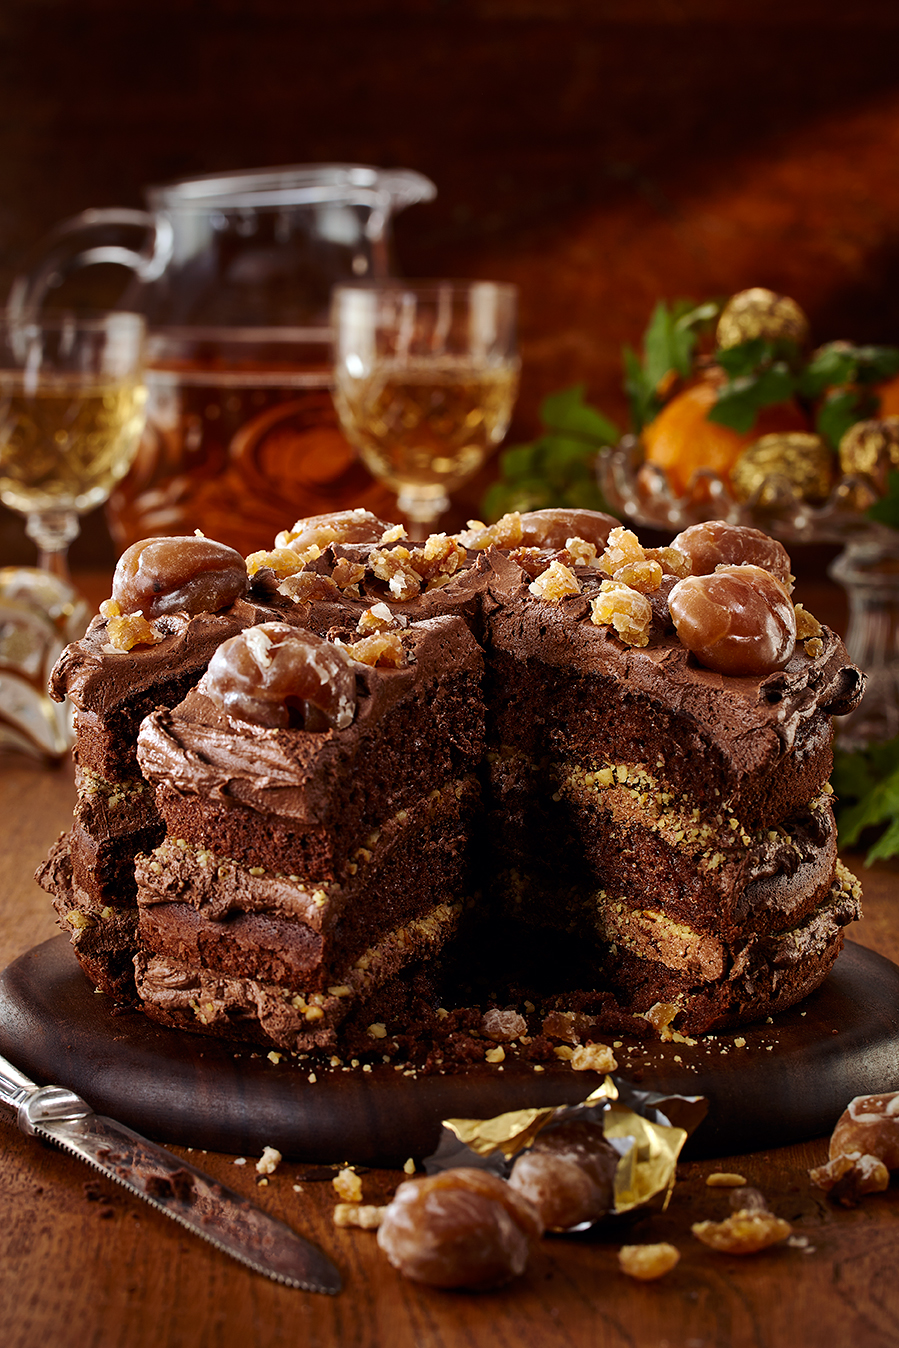 Marron_glace_chcolate_cake